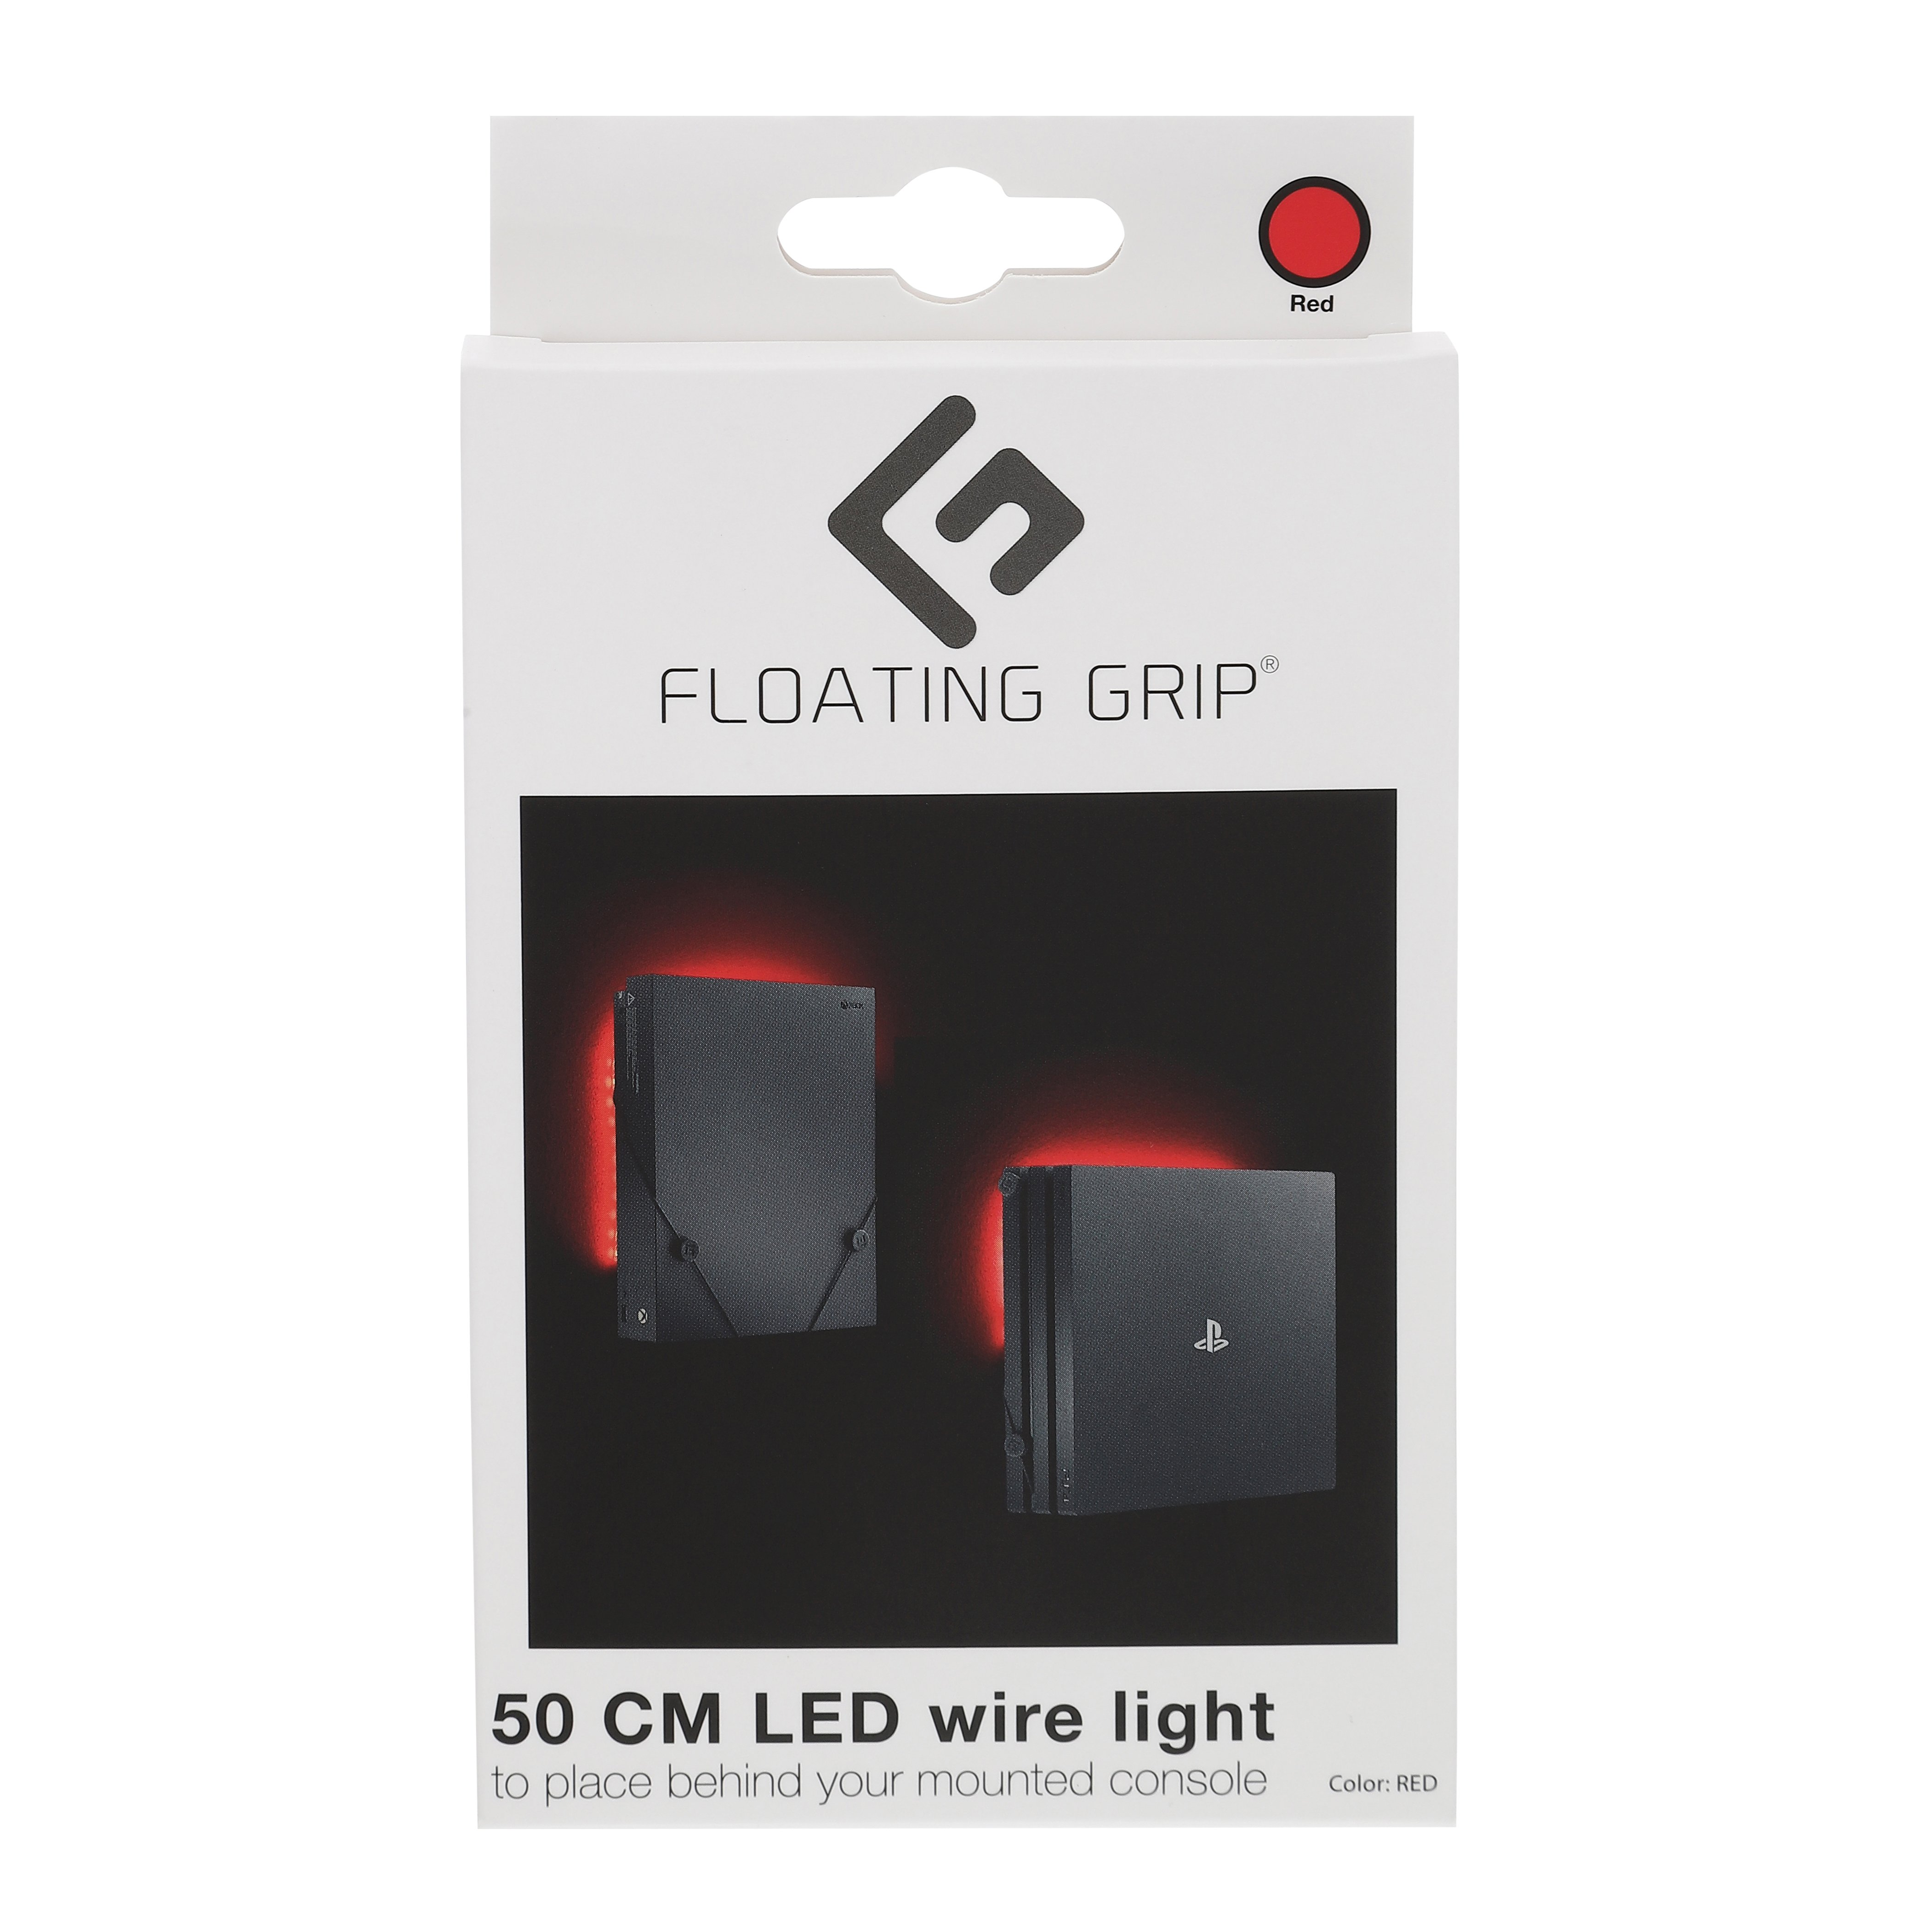 Red LED light - Add on to your FLOATING GRIP®-mount